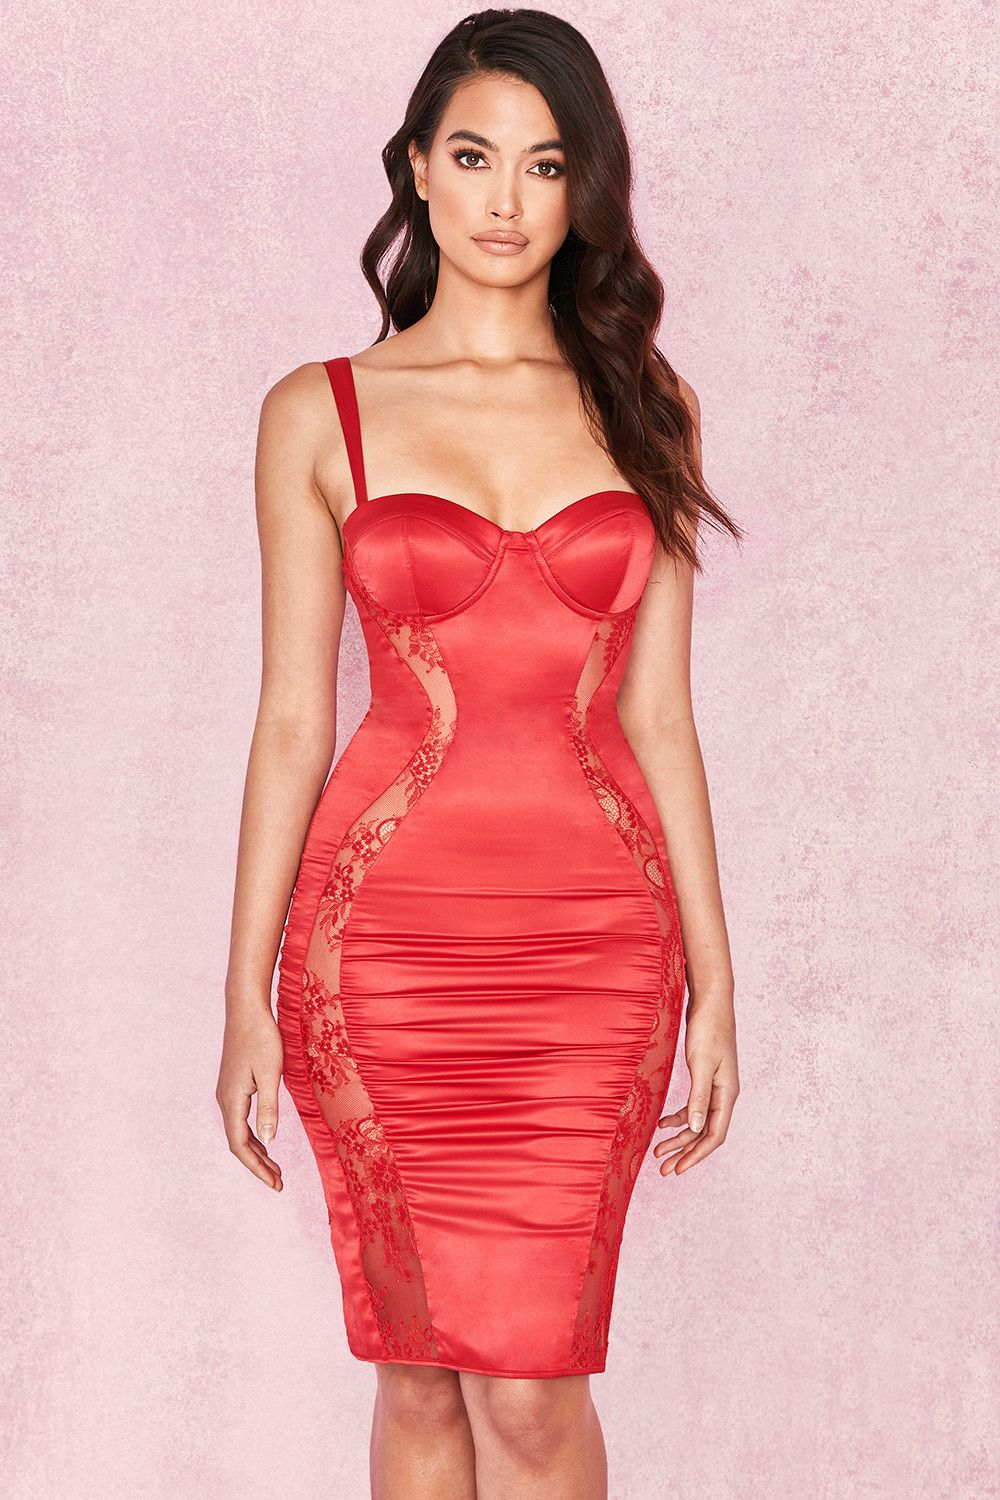 f982202e0a46 Clothing : Bodycon Dresses : 'Micah' Red Satin and Mesh Bustier Dress